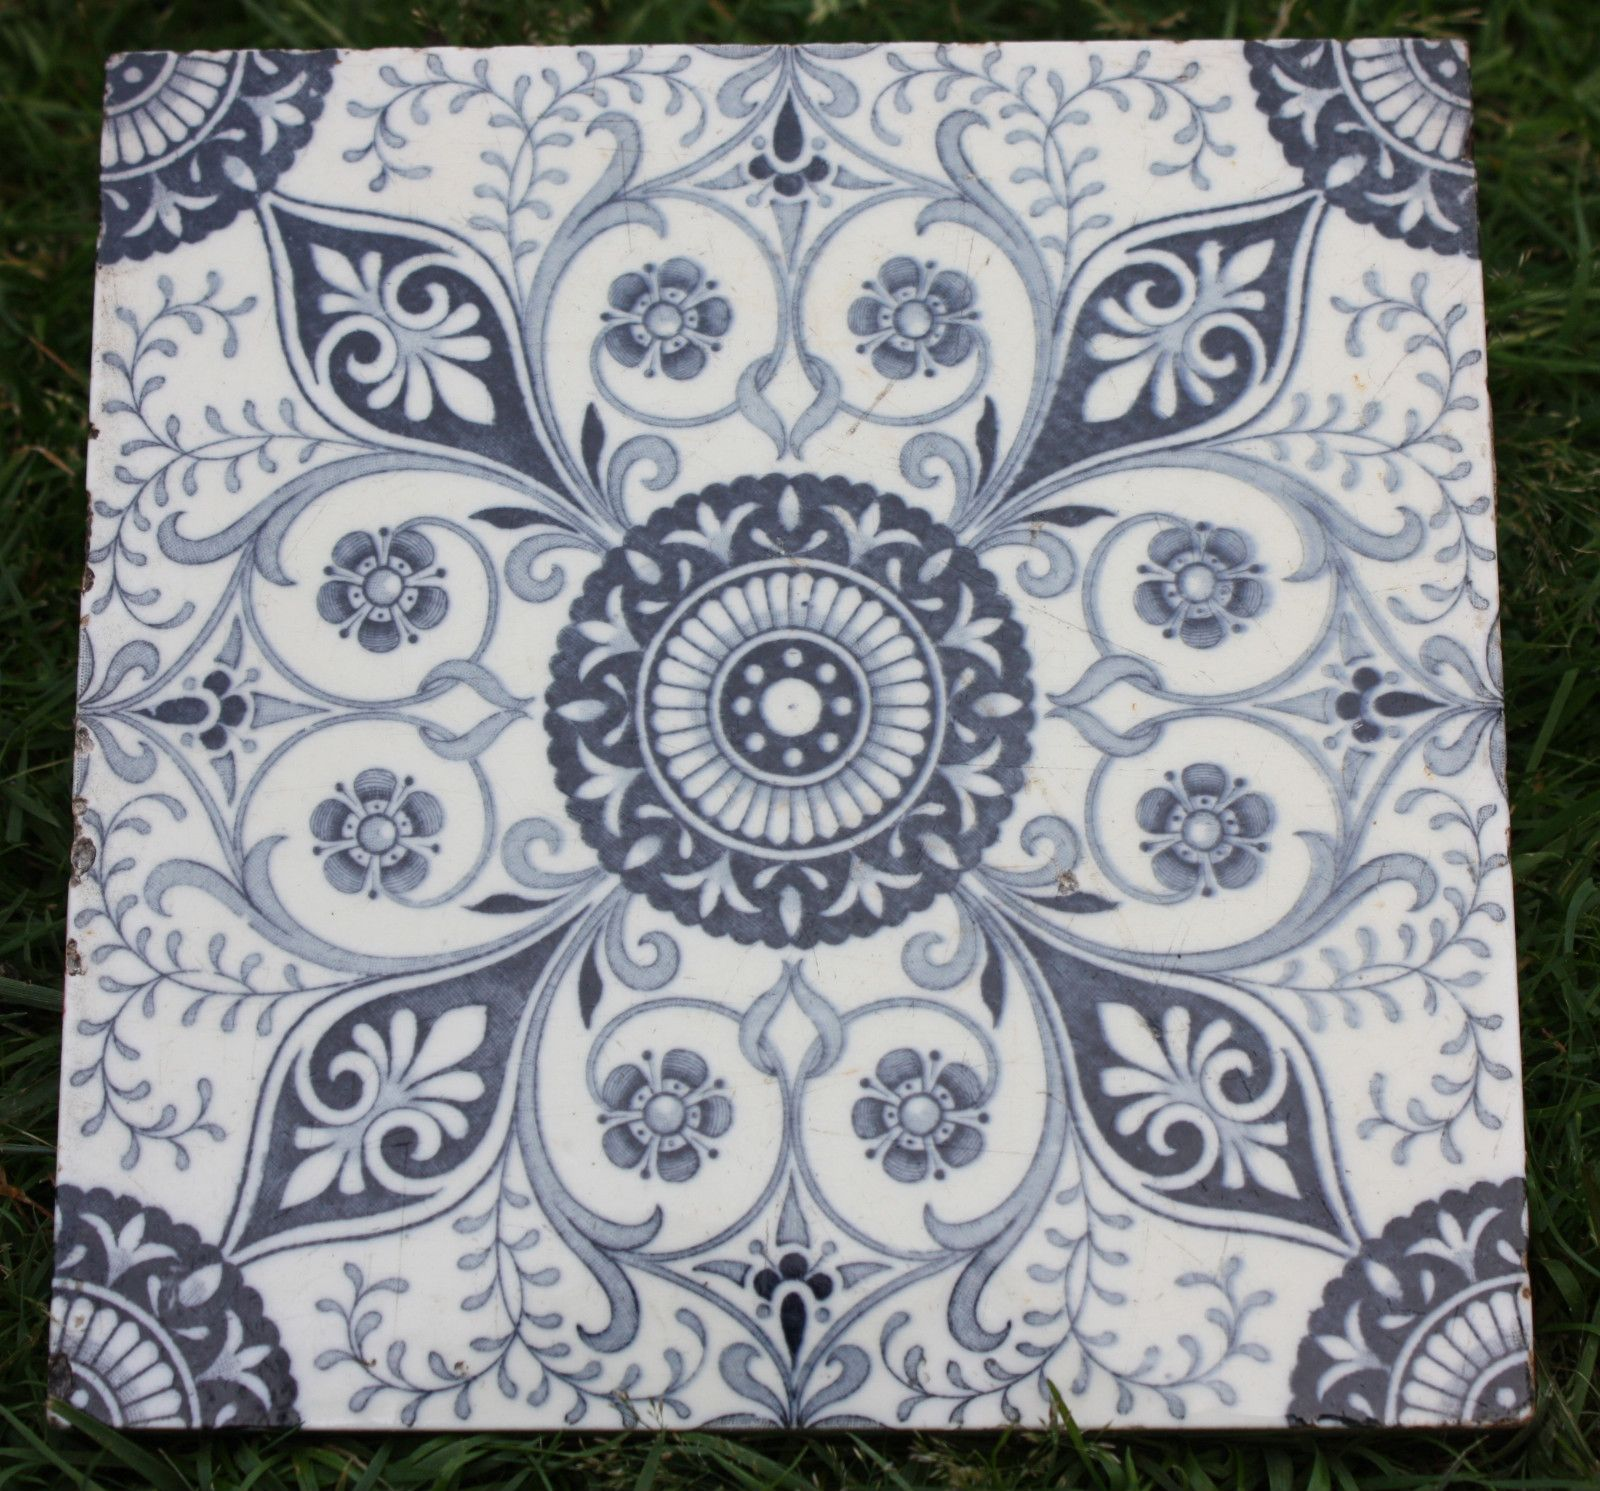 Victorian Blue And White Minton Tile Minton Tiles Blue And